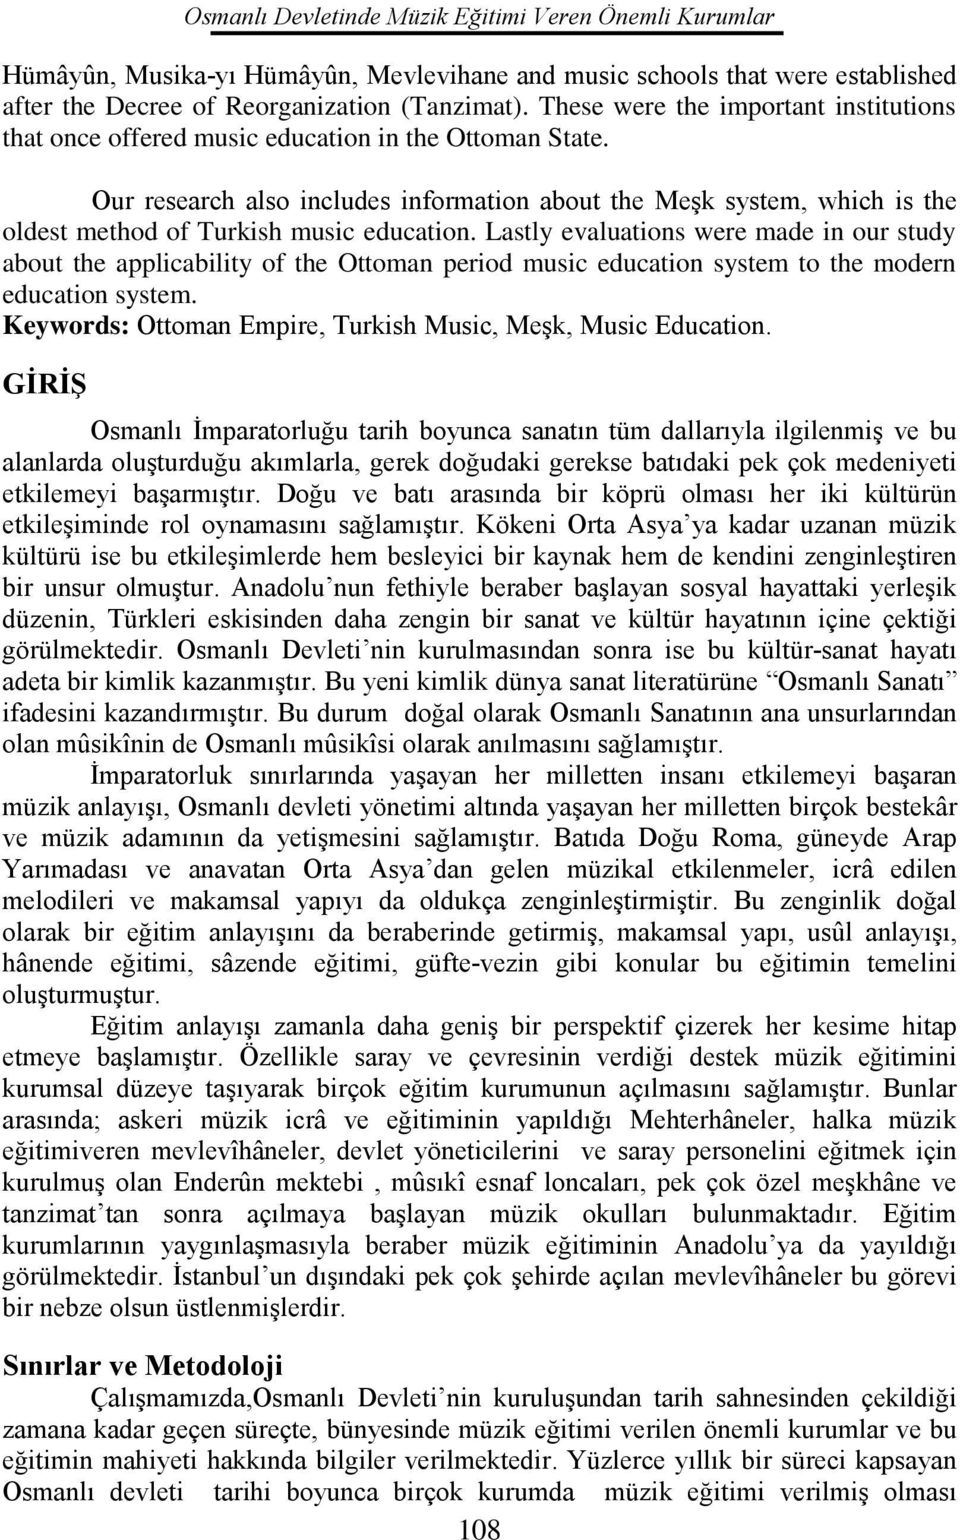 Our research also includes information about the Meşk system, which is the oldest method of Turkish music education.